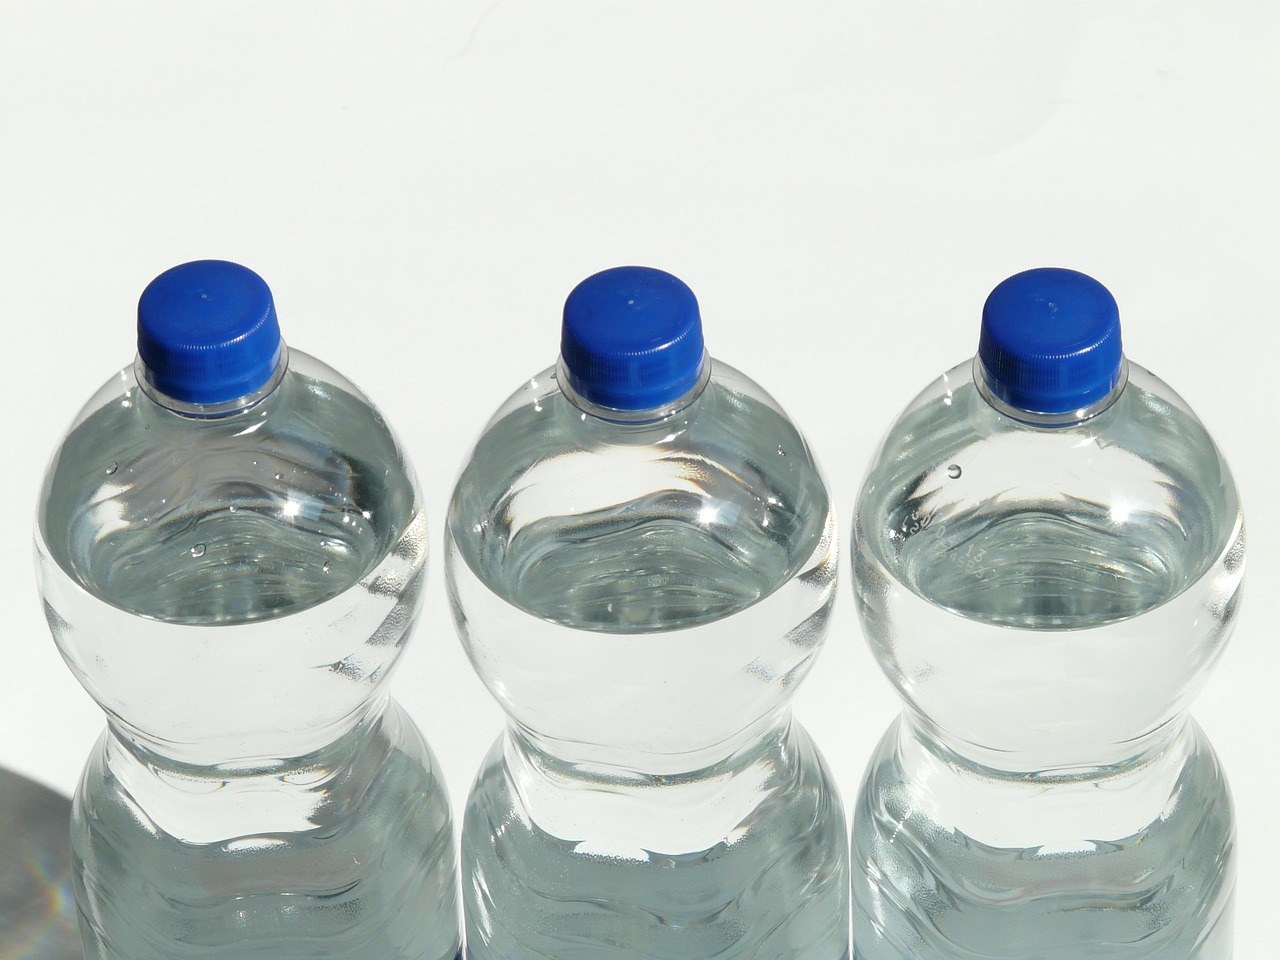 Ooho: The Eco-Friendly Substitute to Plastic Bottles